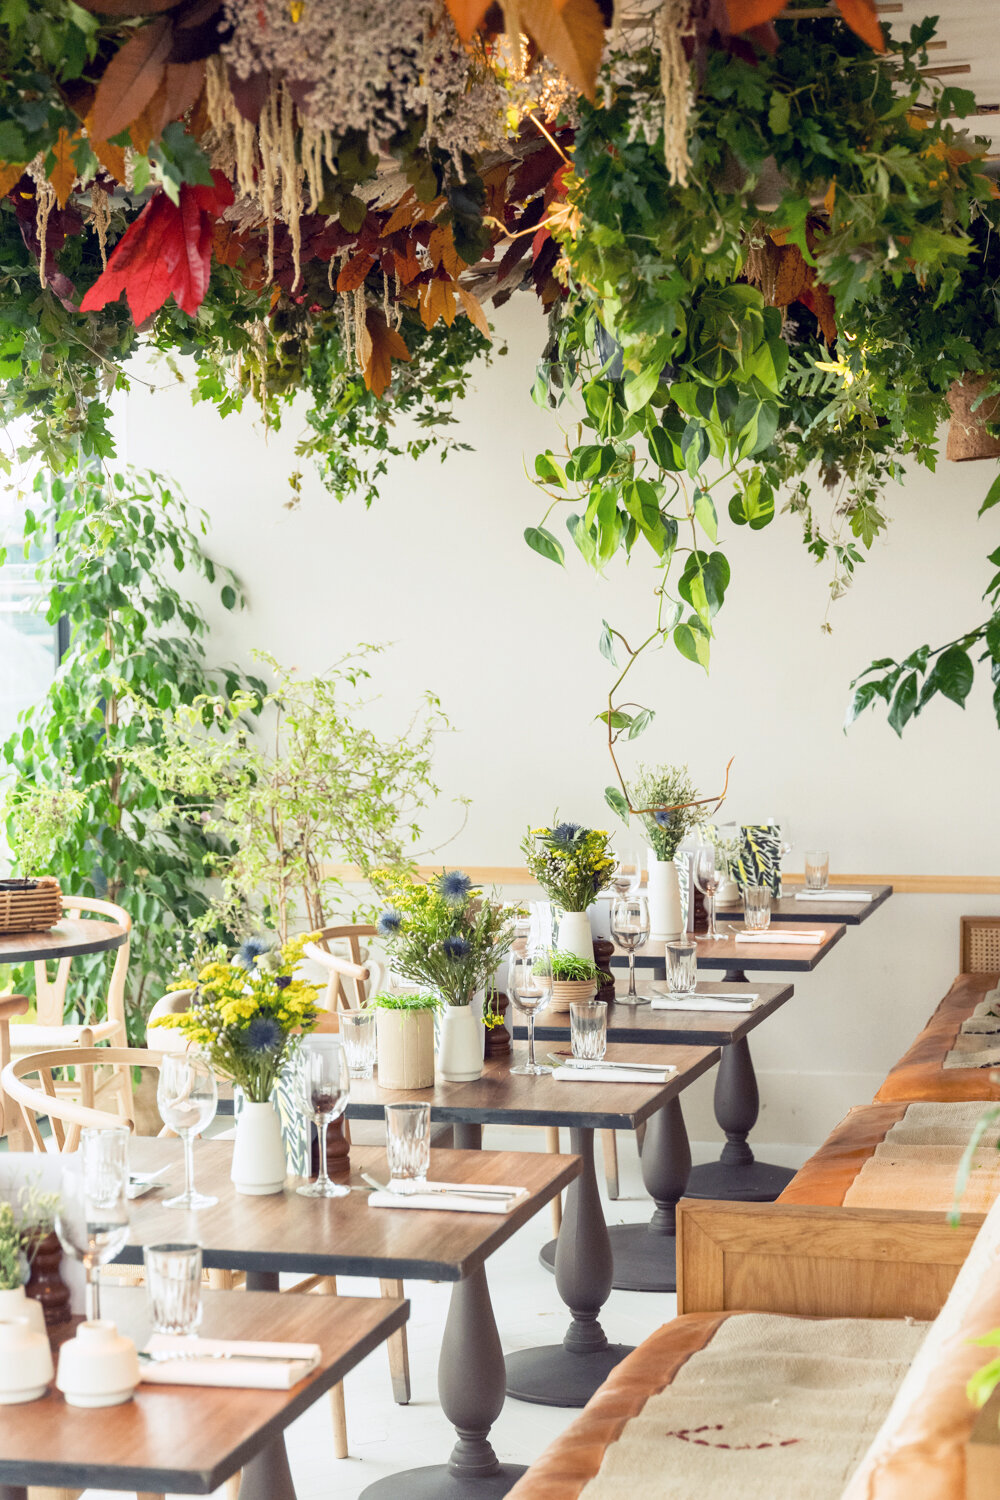 Supper Clubs - Join us in our stunning private dining room for a series of seasonal suppers this autumn.